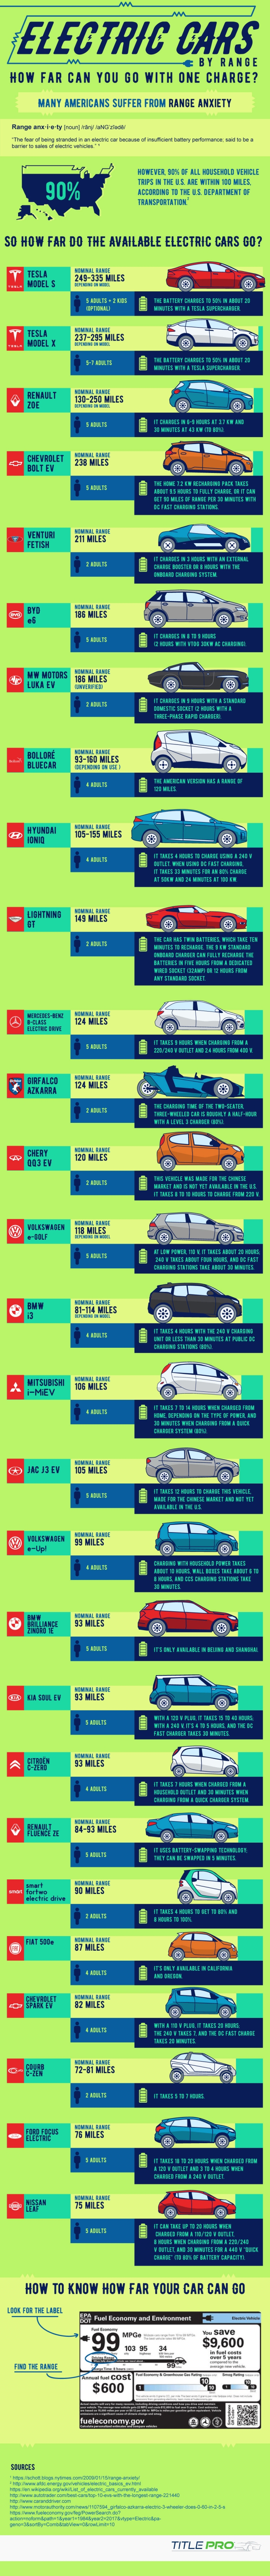 How Far An Electric Car Can Really Go Between Charges (infographic)